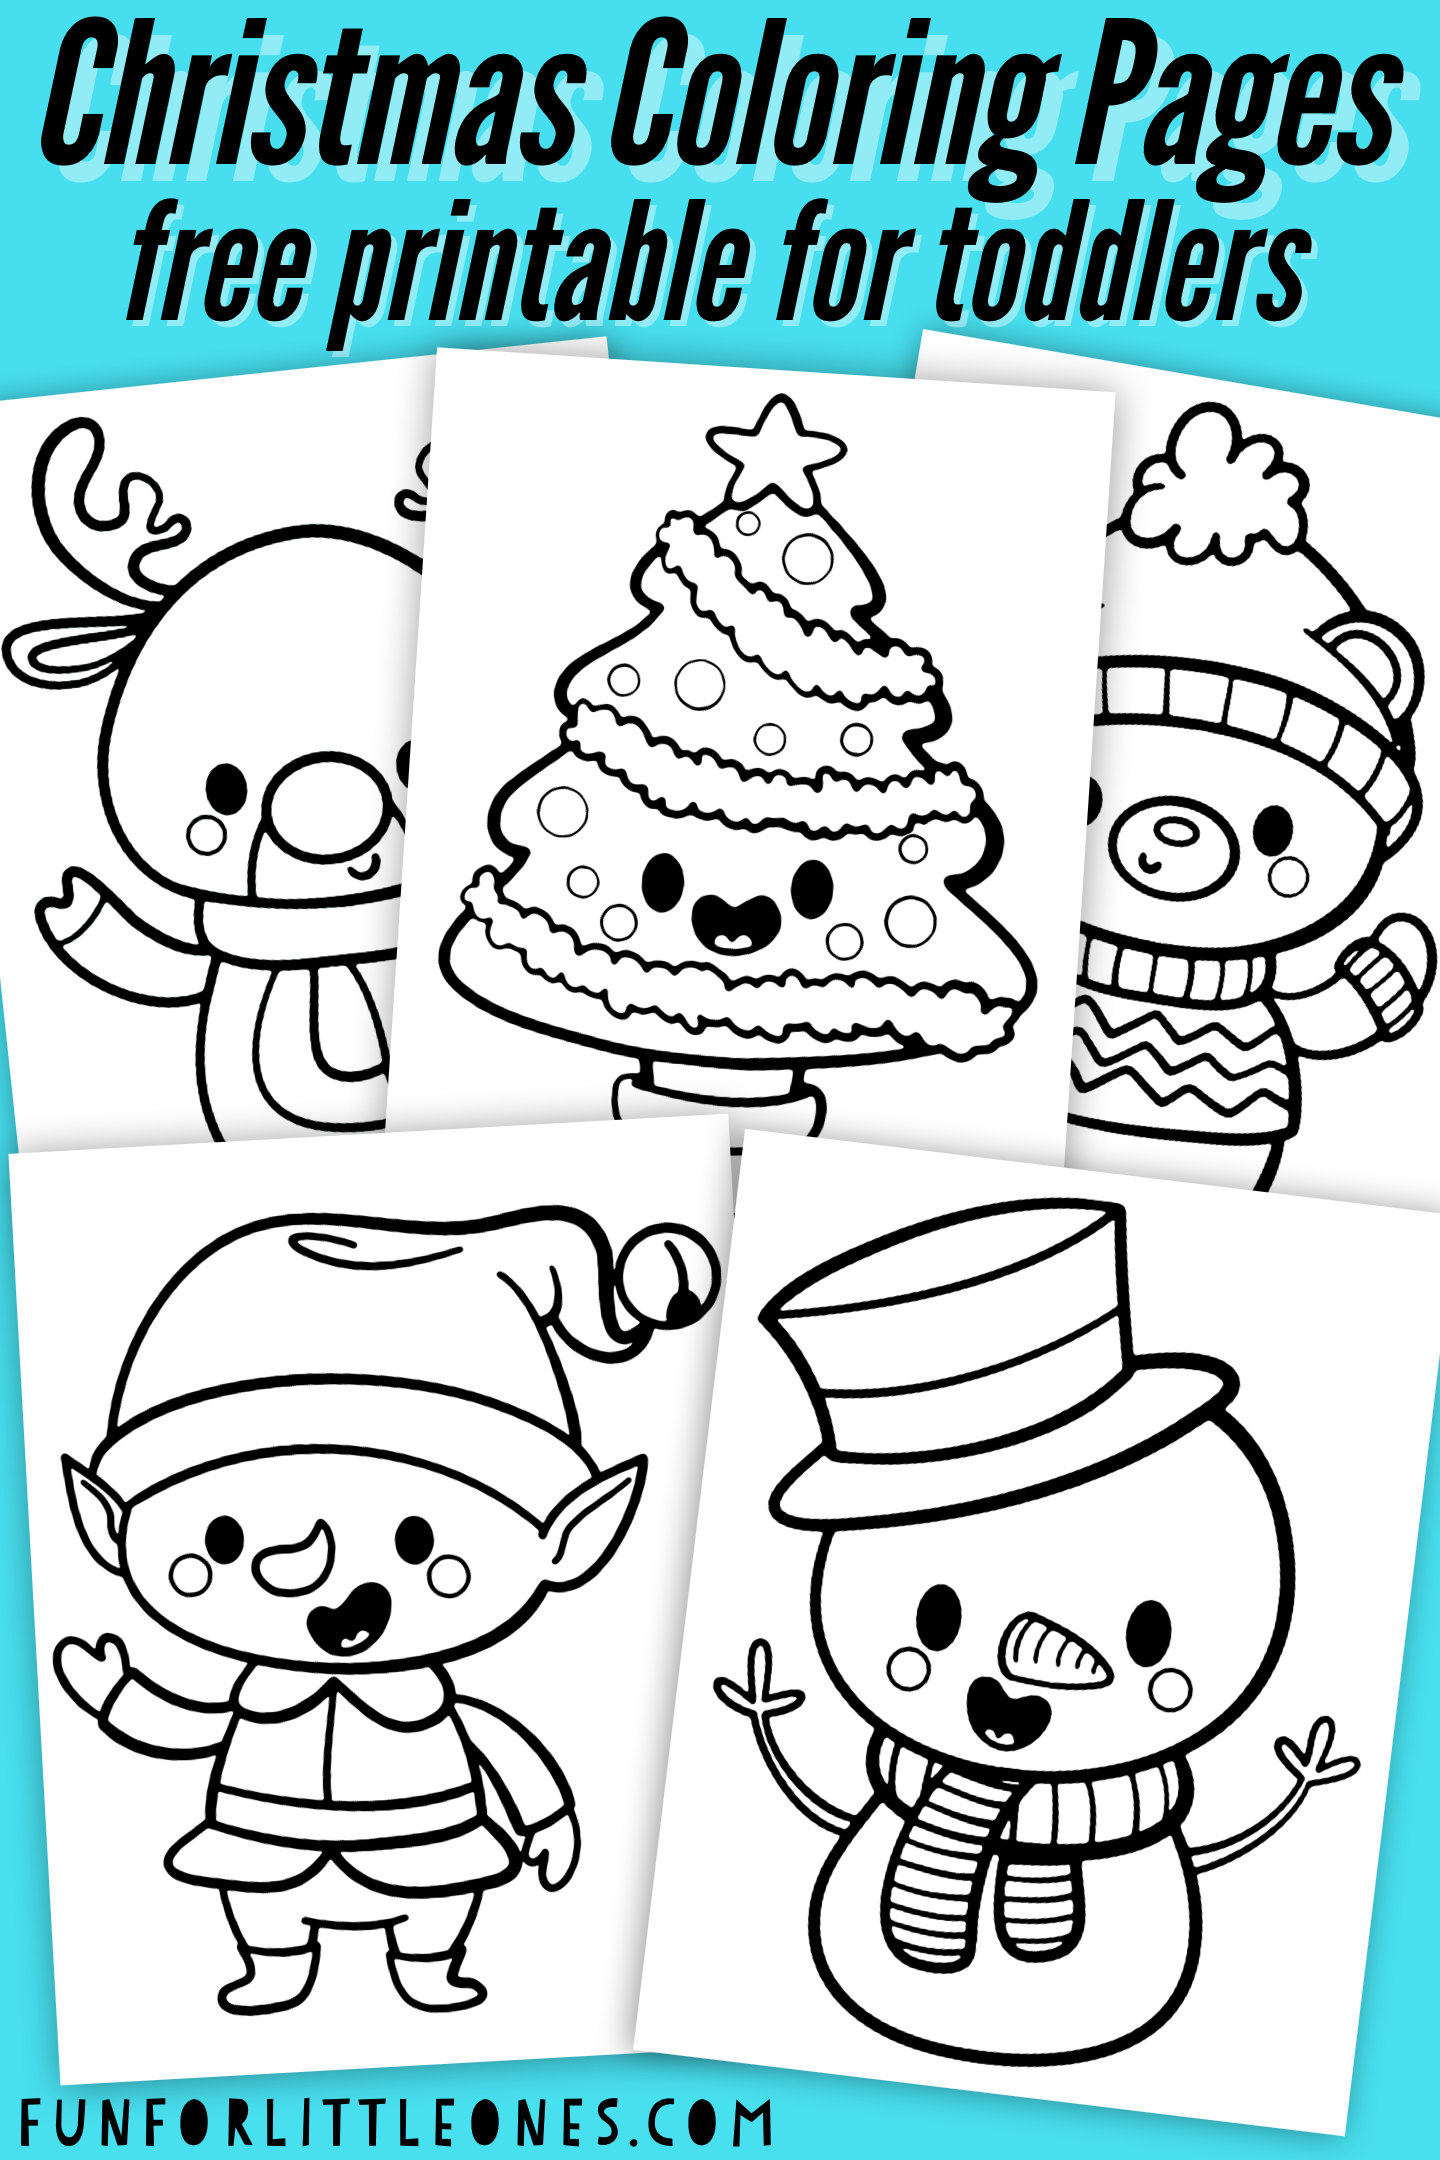 Color Christmas #2 / Väritä joulu #2 | Christmas coloring pages ... | 2160x1440